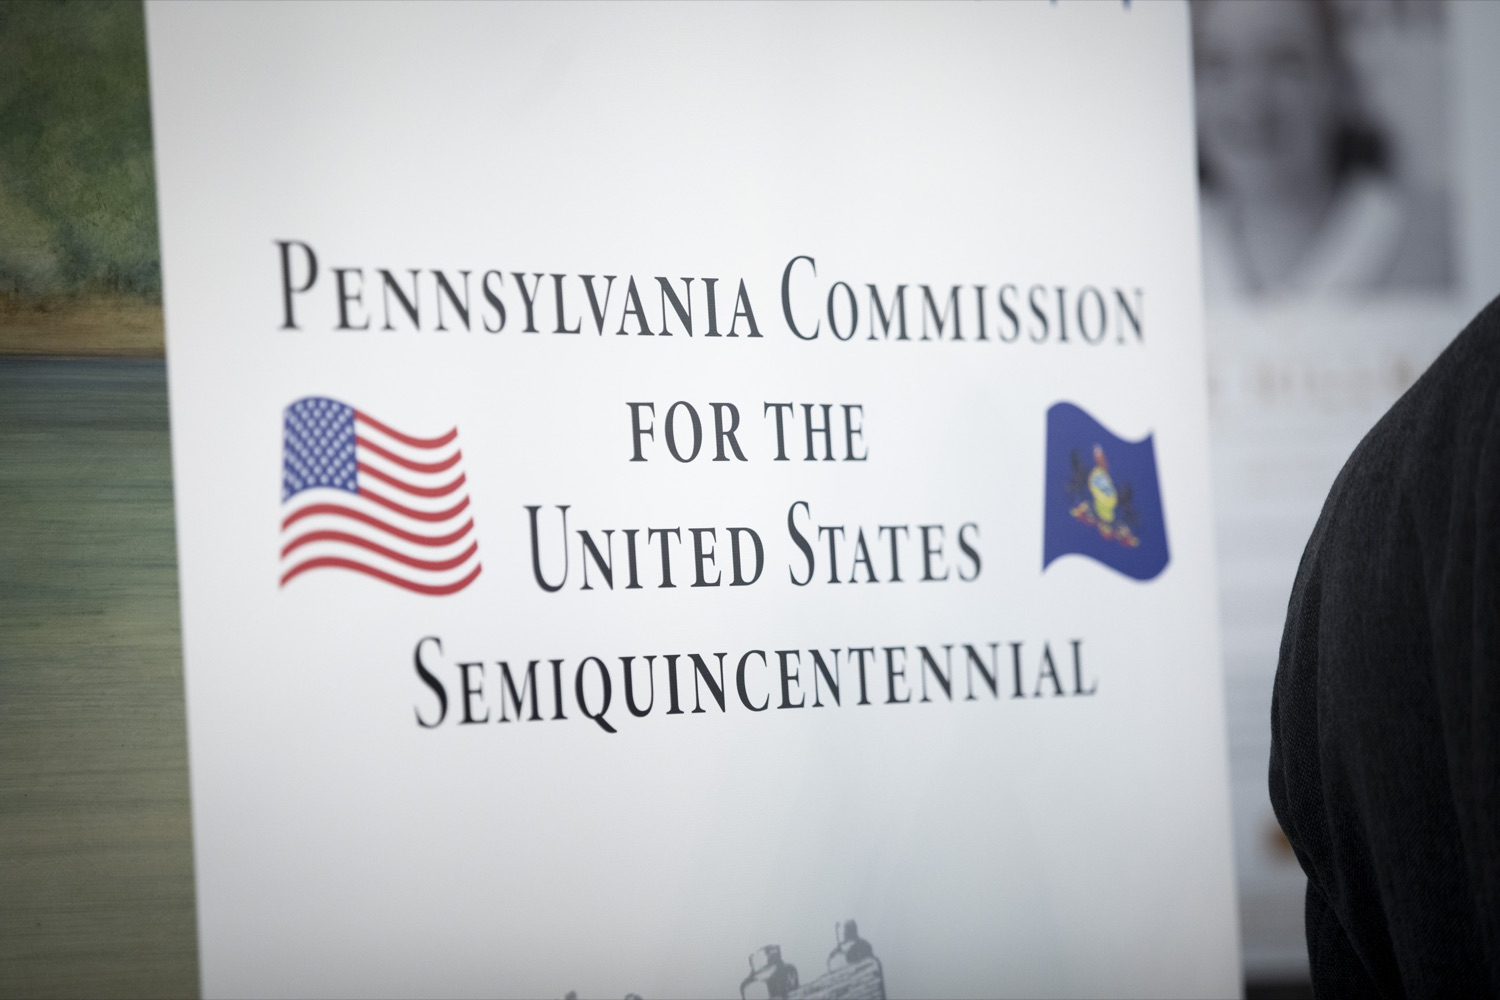 """<a href=""""http://filesource.abacast.com/commonwealthofpa/photo/17424_GOV_AMERICA250_CZ_16.JPG"""" target=""""_blank"""">⇣Download Photo<br></a>Pennsylvania officially recognized the members of the America250PA commission at a swearing-in ceremony held at the Governors Residence on September 17, 2019."""